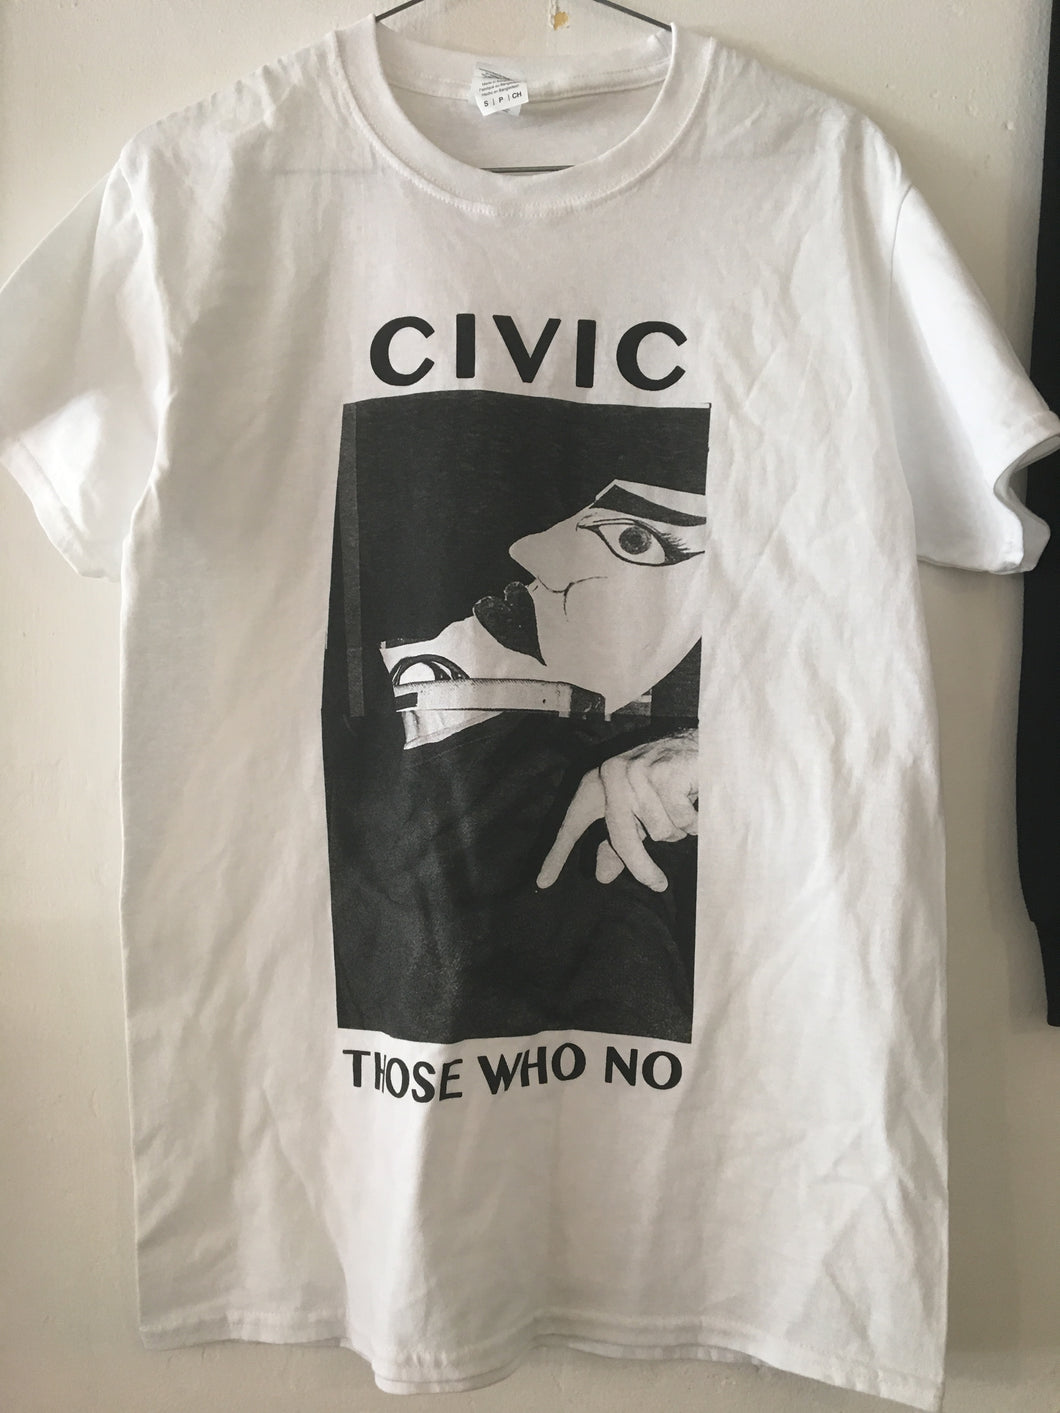 CIVIC - THOSE WHO NO SHIRT